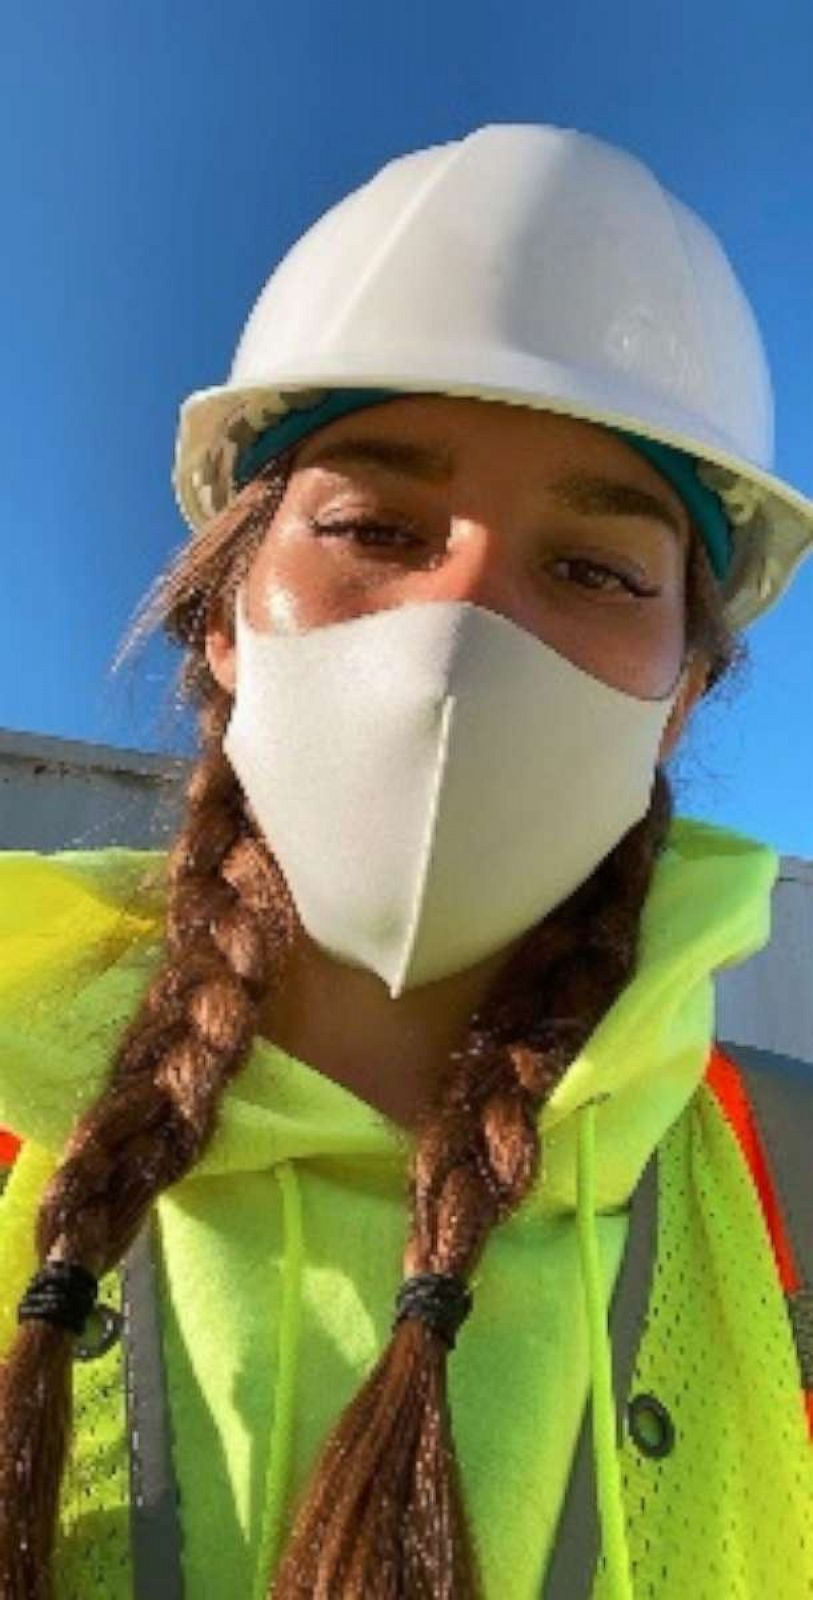 PHOTO: Milanka, a 25-year-old geologist from Philadelphia, Pennsylvania, who declined to give her last name due to privacy reasons, made a viral video describing experiences she's had on construction job sites.